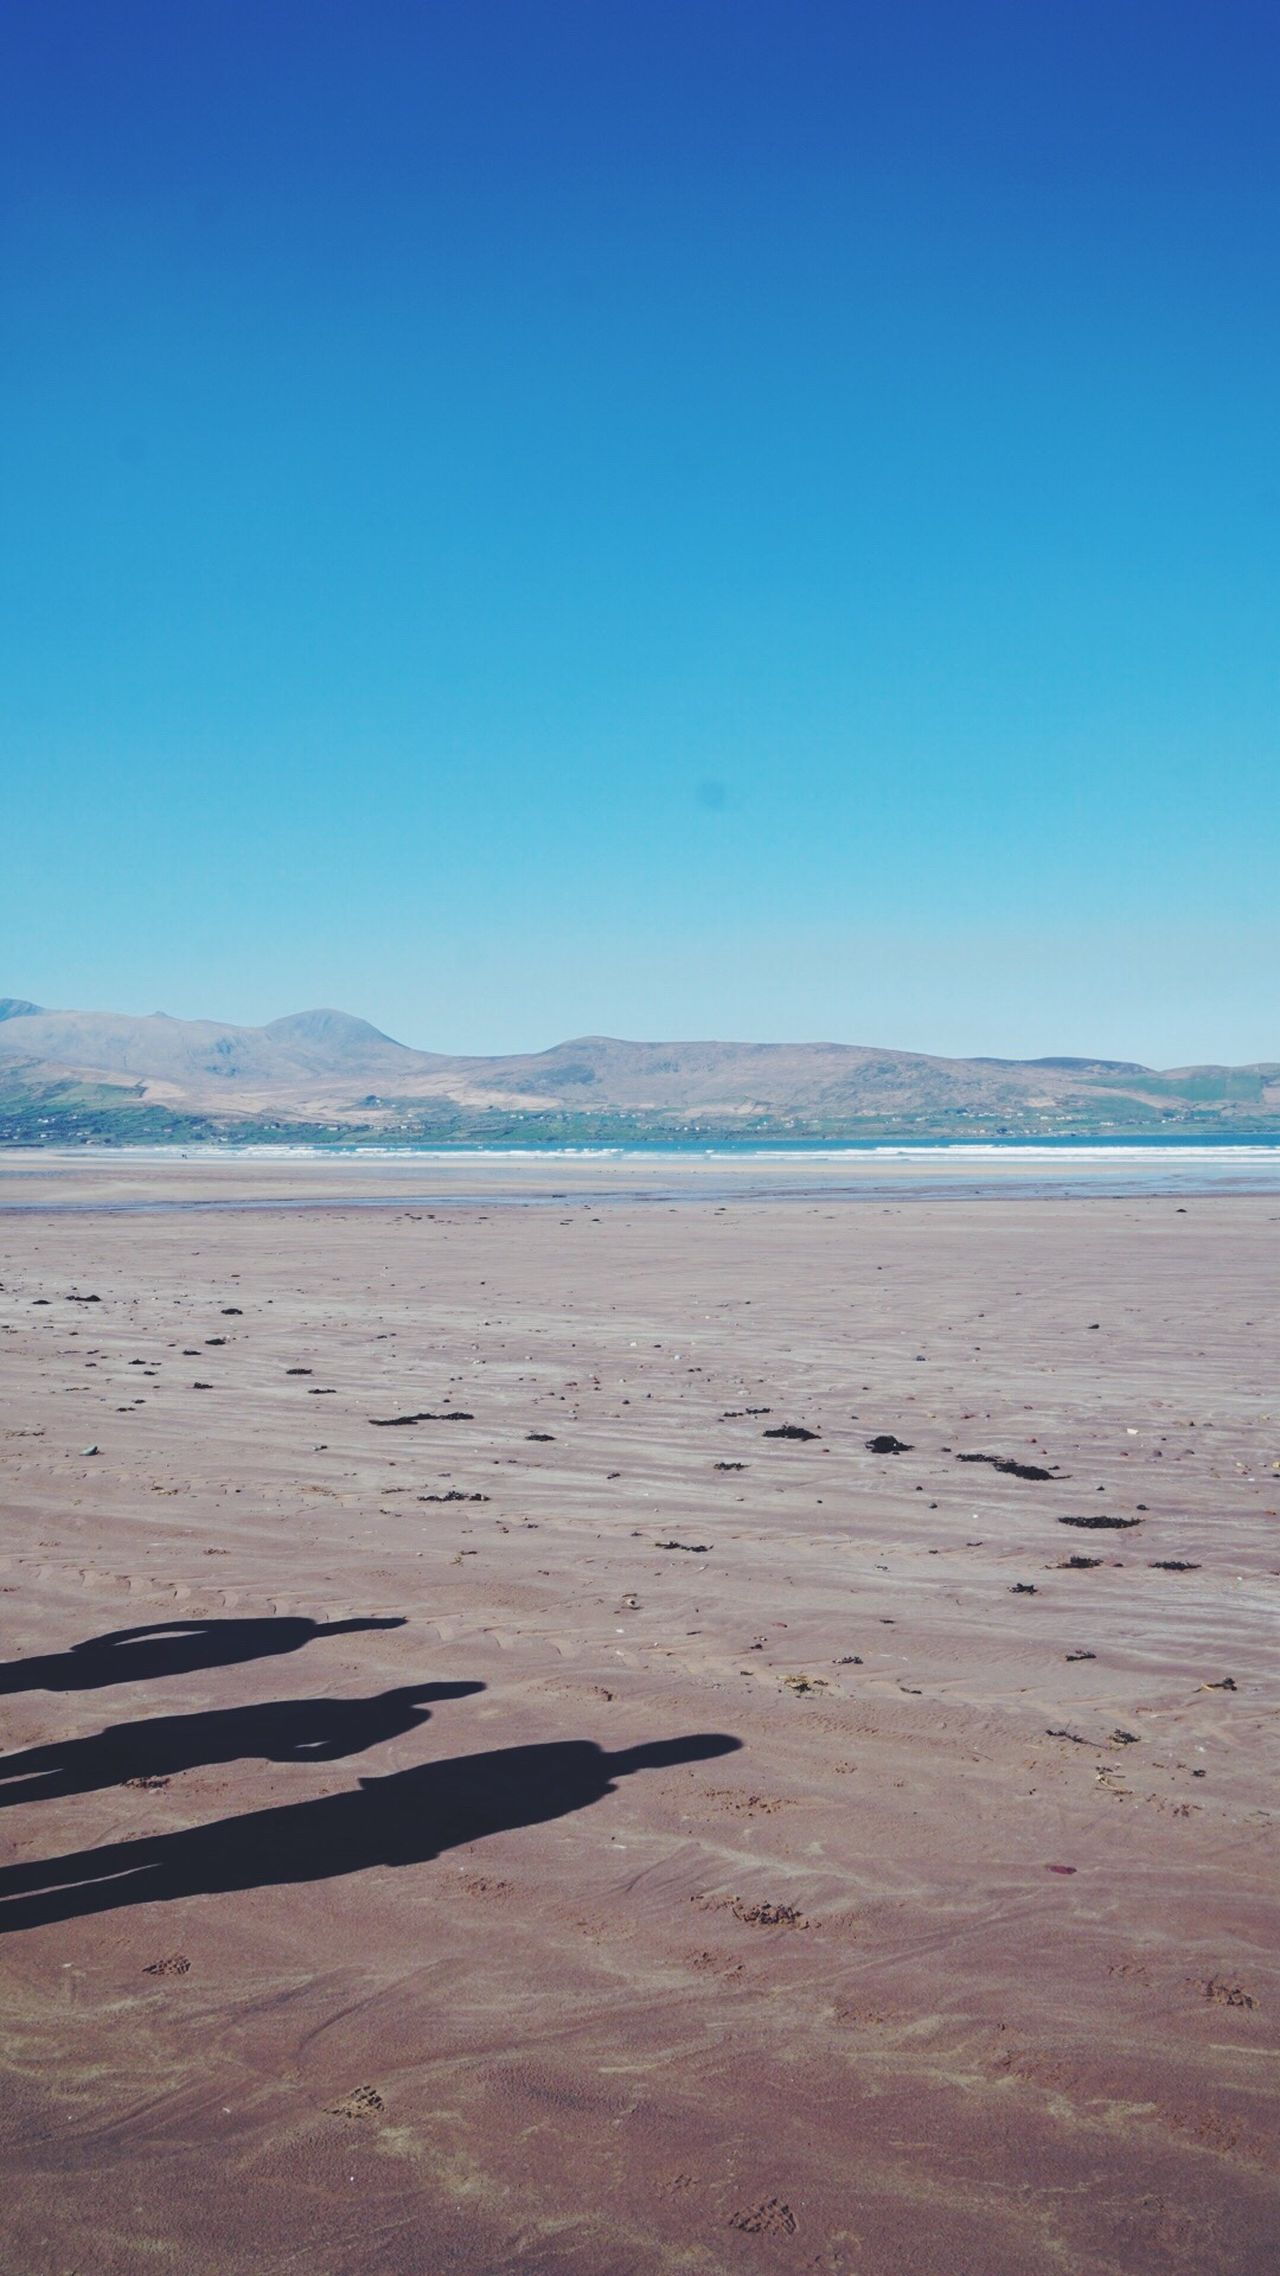 Live For The Story Blue Beach Nature Sand Scenics Beauty In Nature Water Sea Landscape Shadows Beachtime Ireland Wildatlanticway